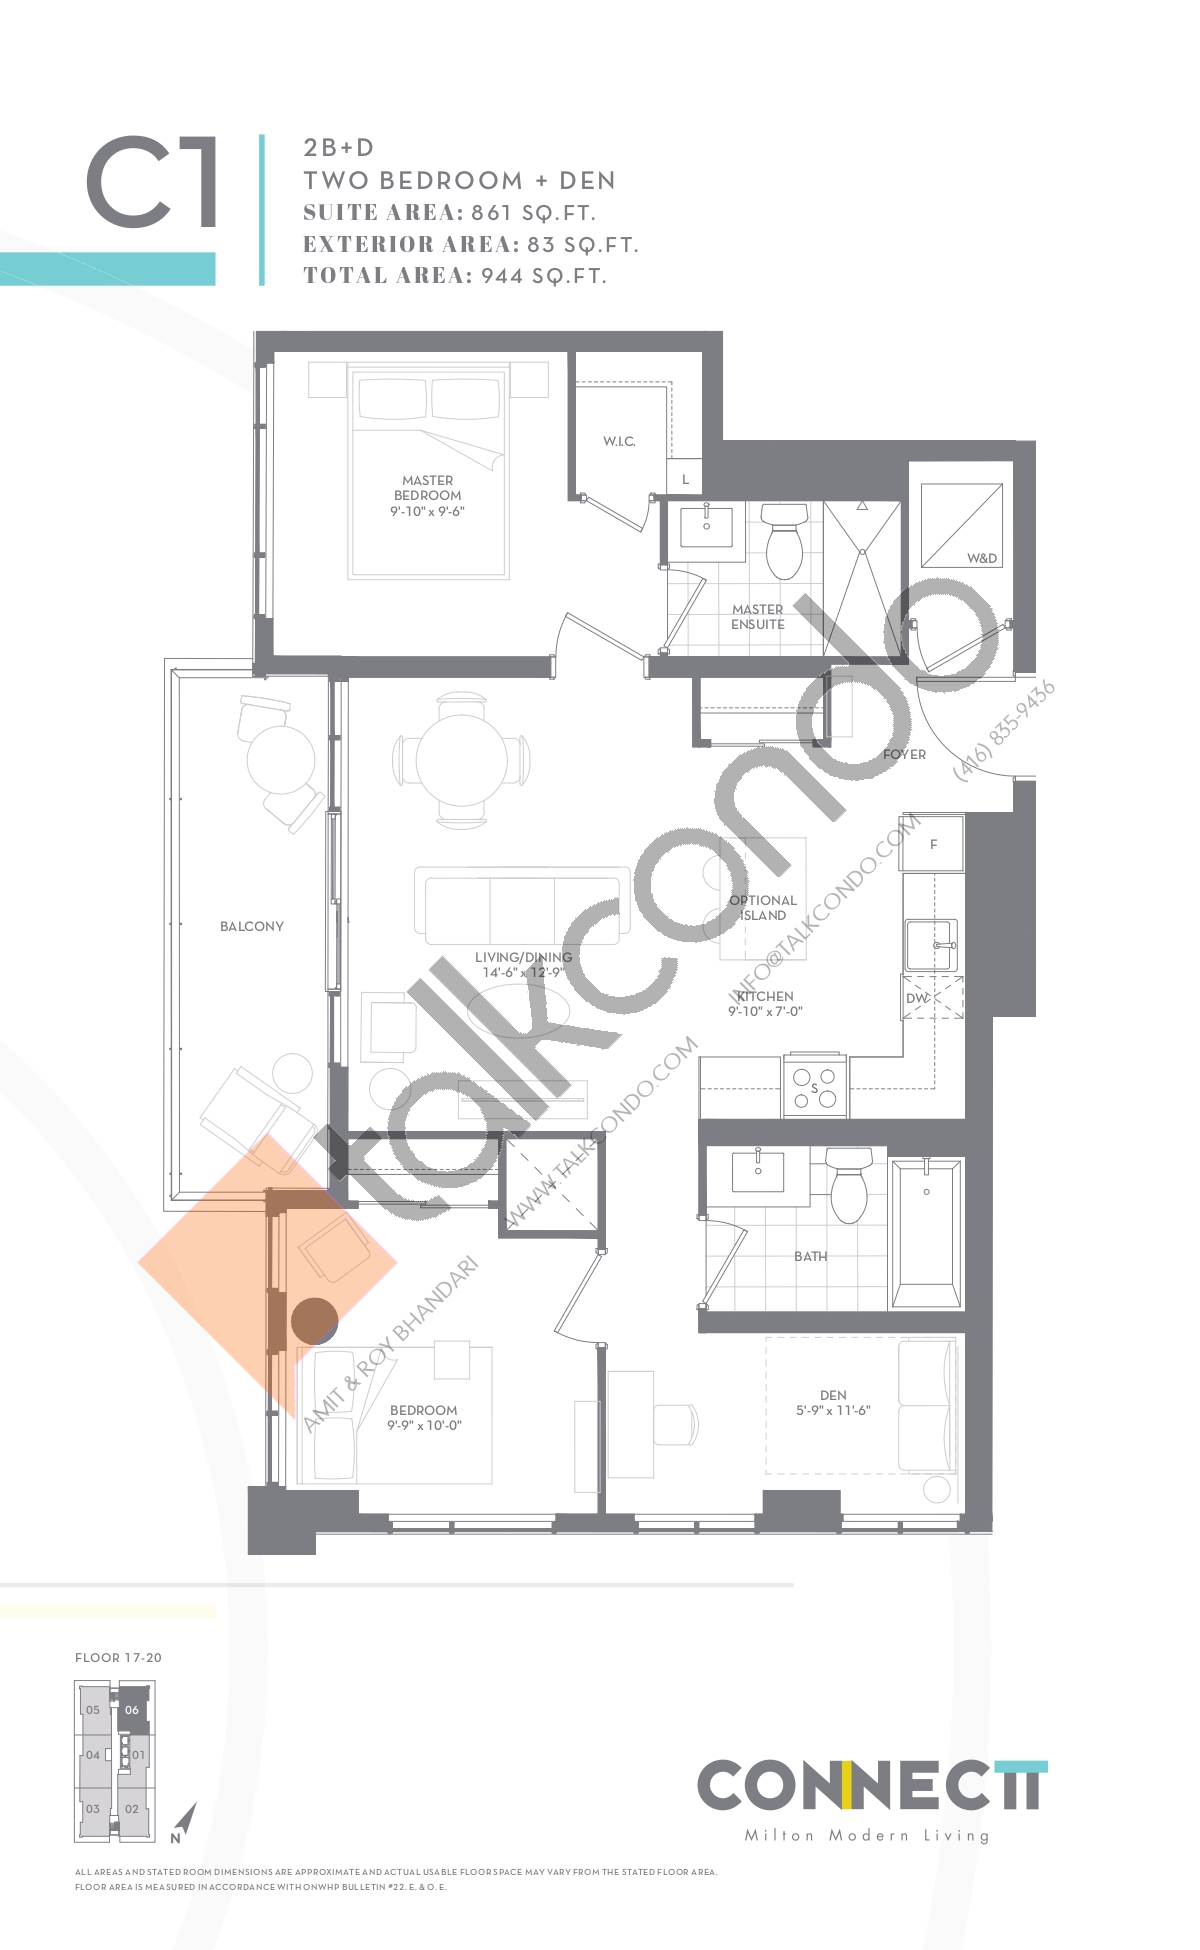 2B+D Floor Plan at Connectt Urban Community Condos - 861 sq.ft